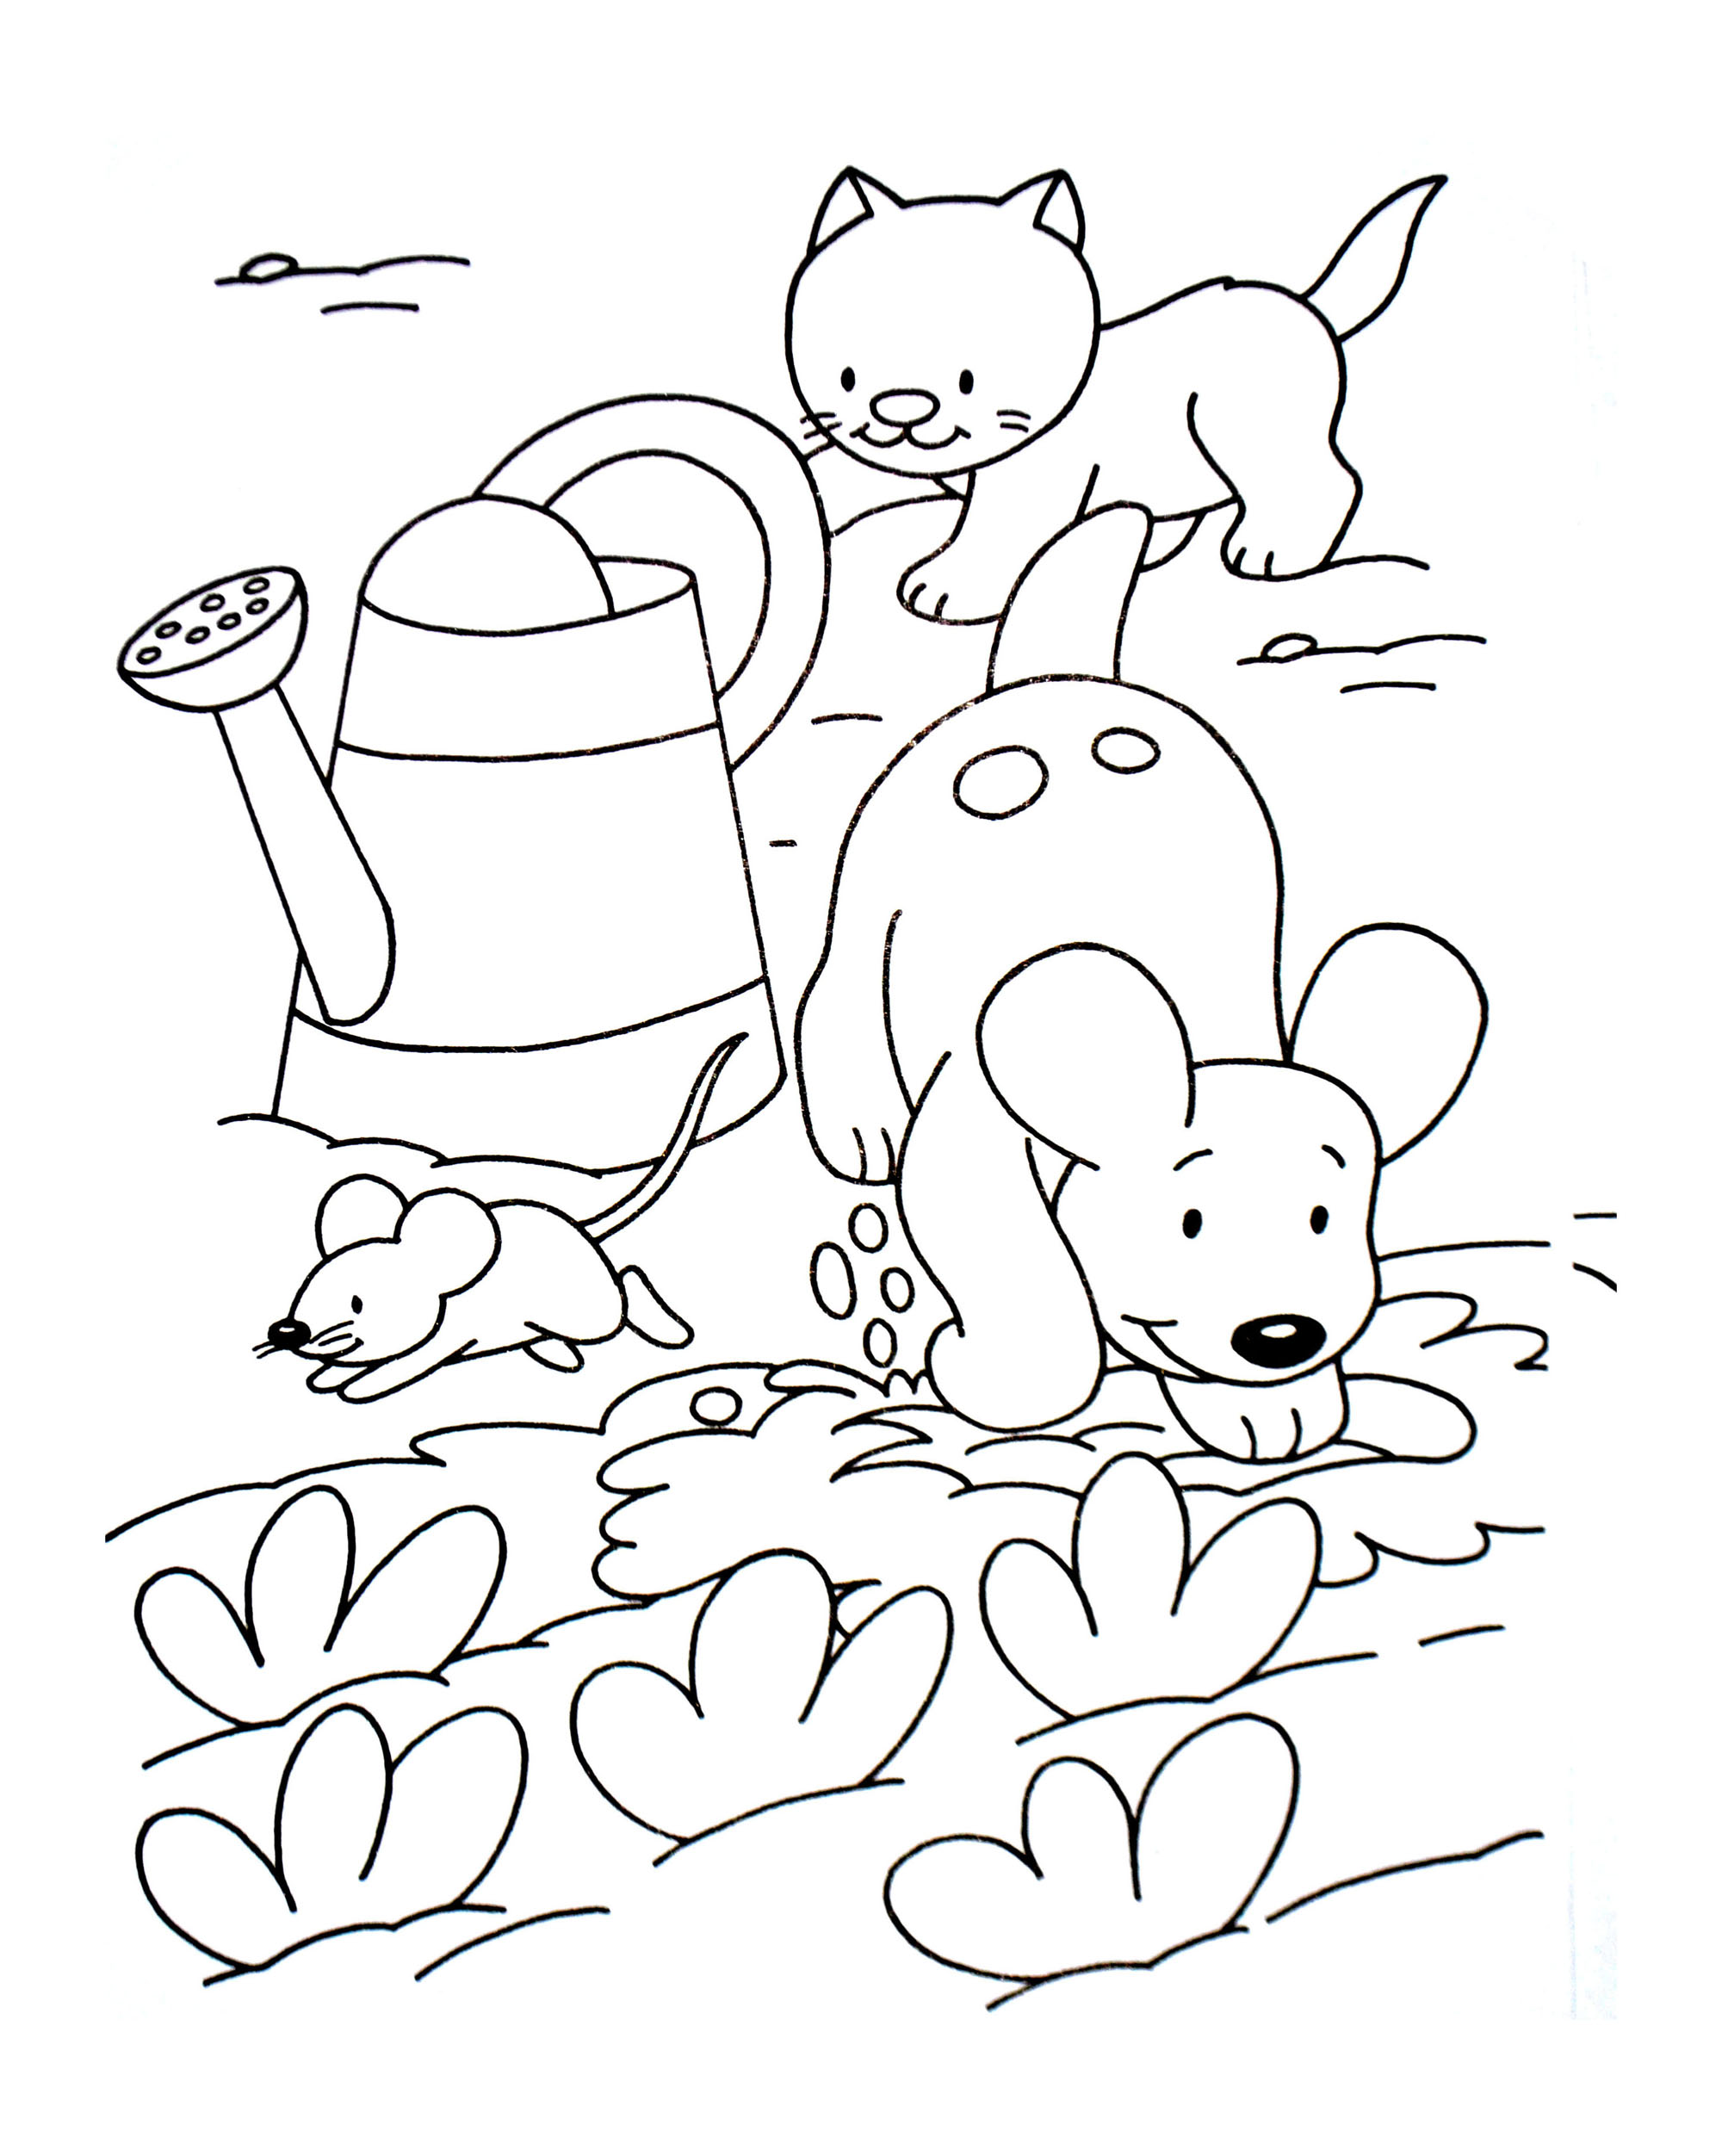 dog cat and mouse animal coloring pages for kids to print u0026 color